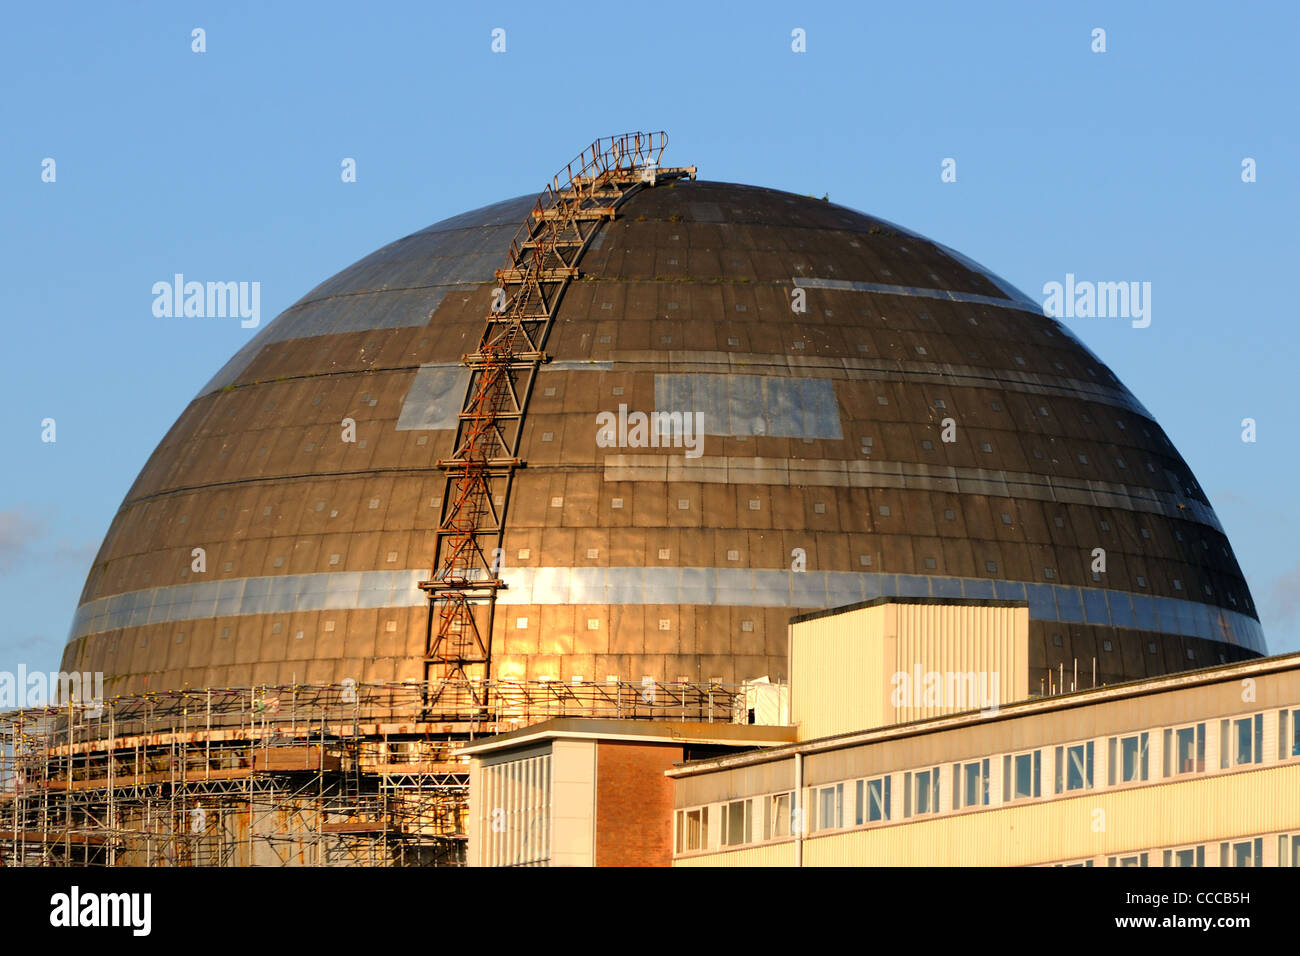 One of the decommissioned nuclear reactor buildings at Sellafield Power Station, Cumbria - Stock Image